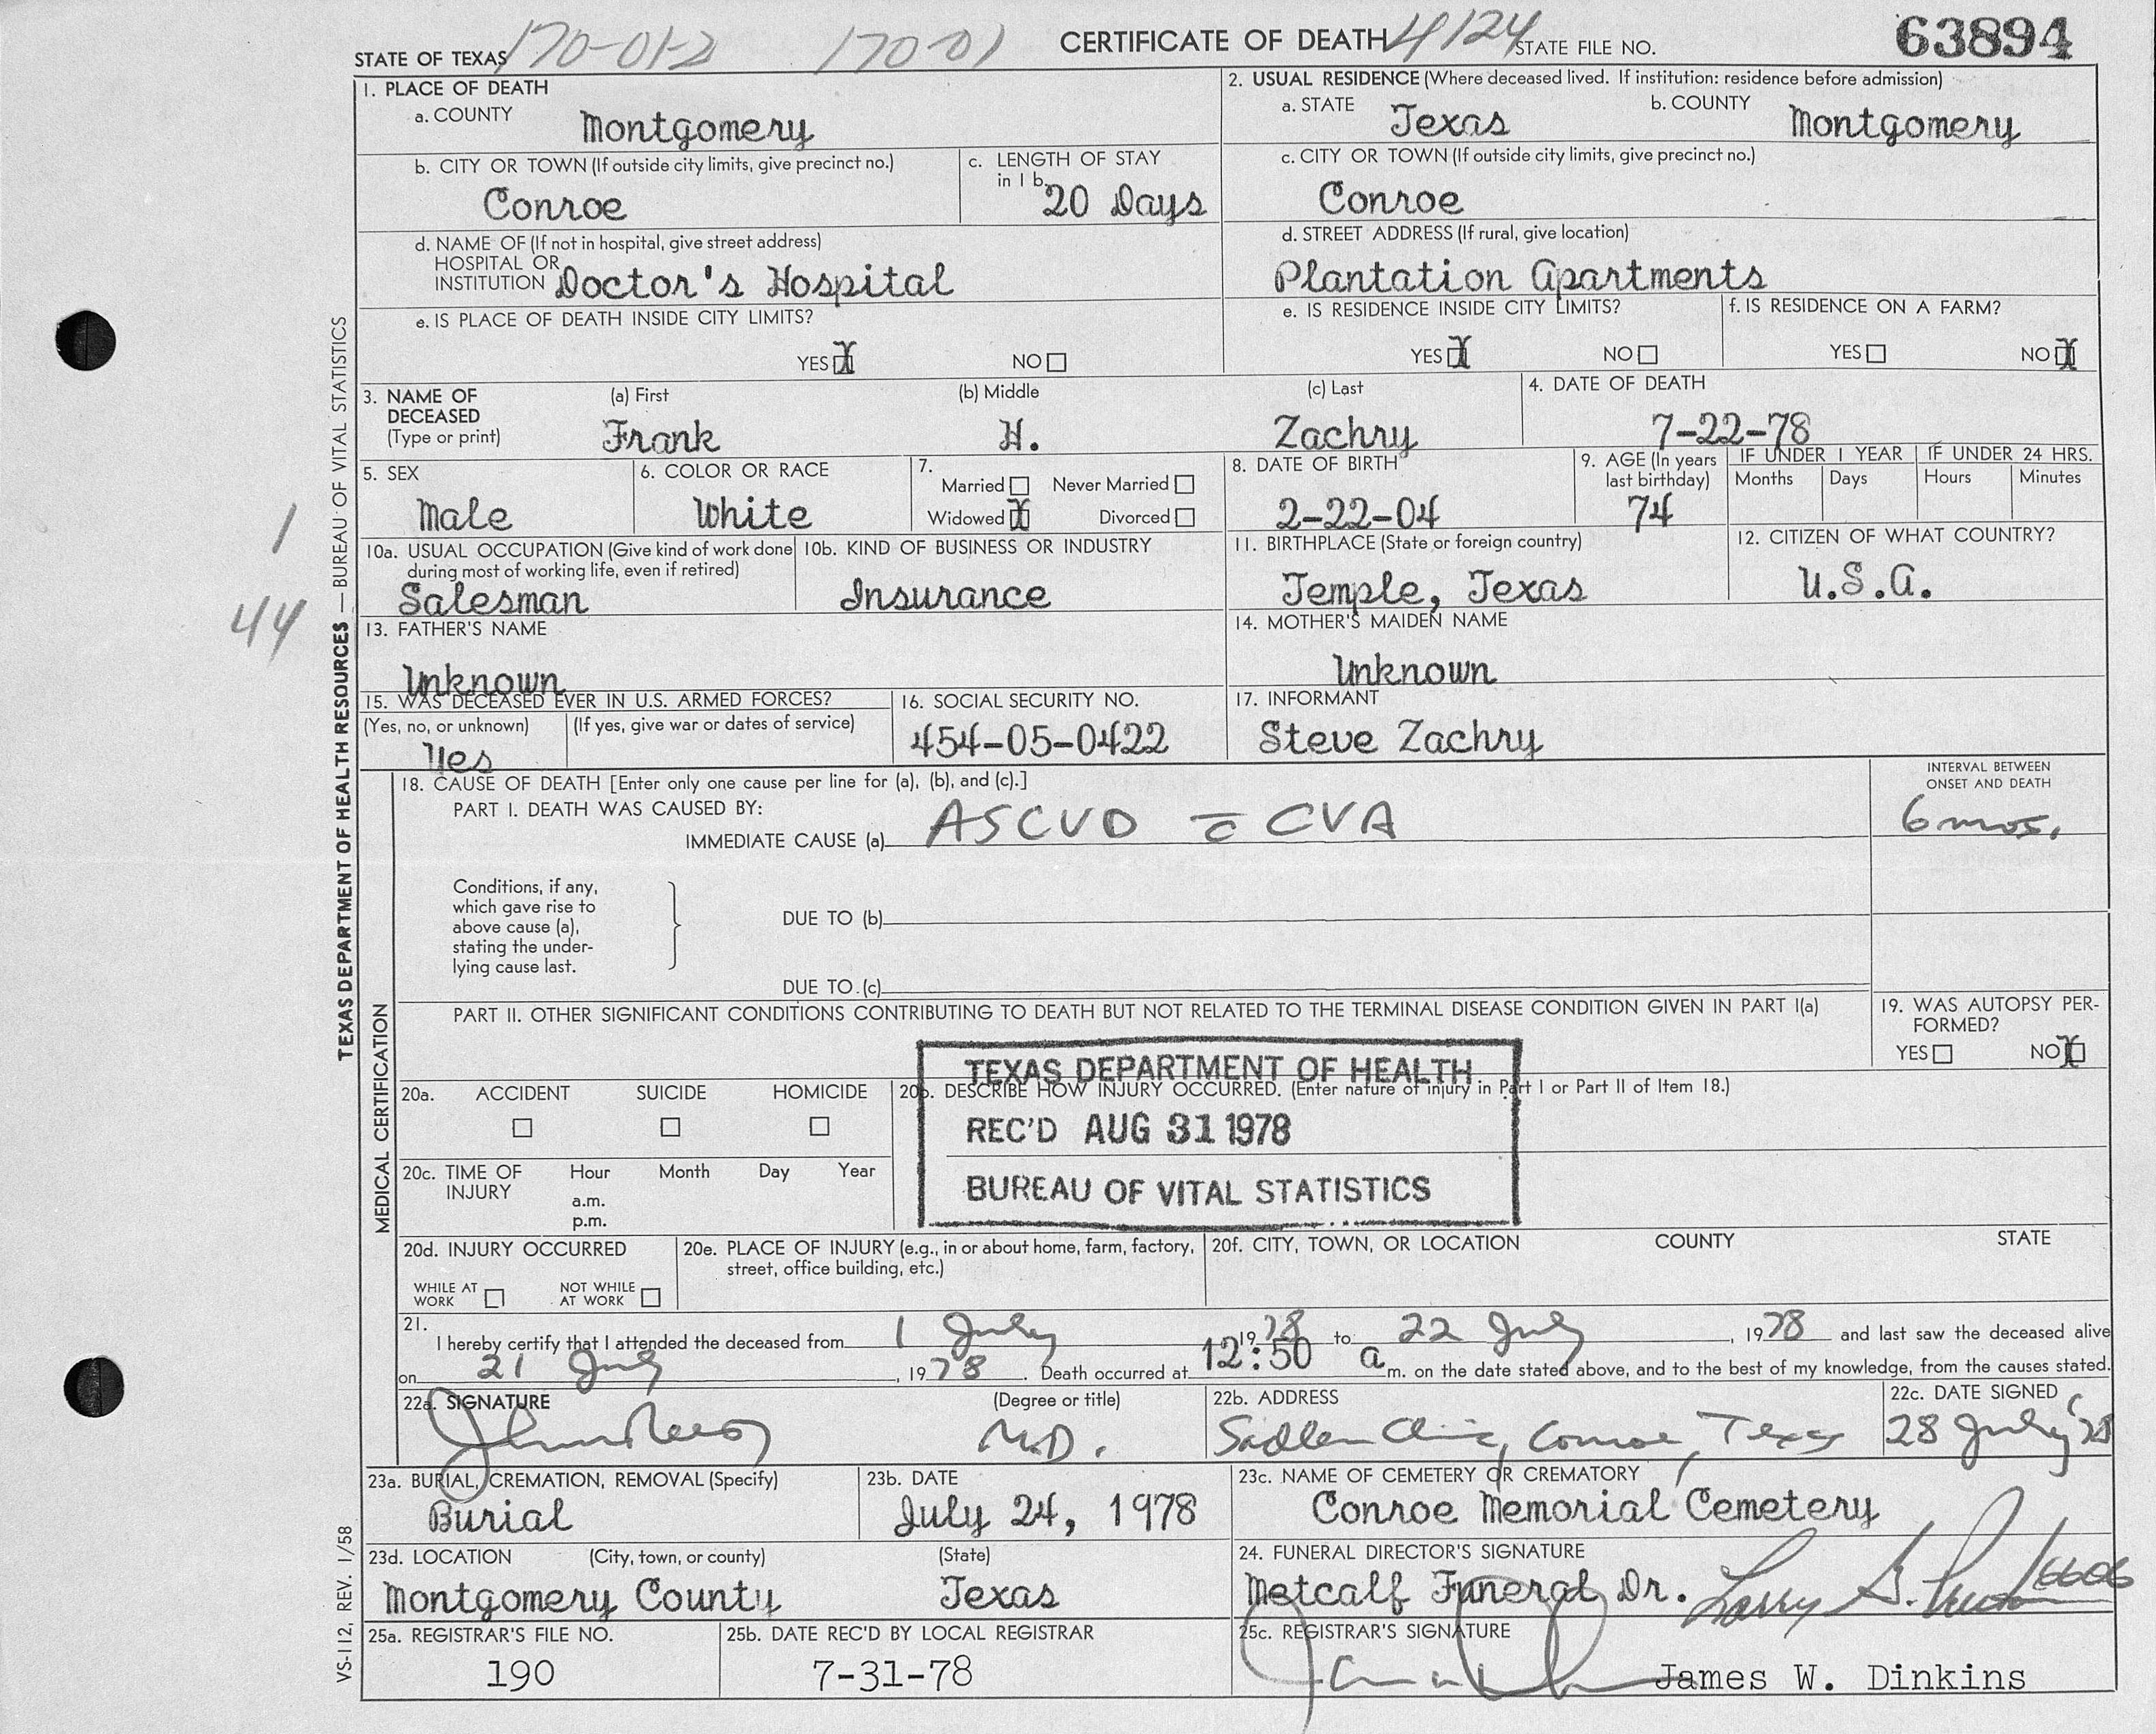 Conroe memorial cemetery montgomery county texas collection frank h zachry death certificate texas deaths 1977 1986 xflitez Images